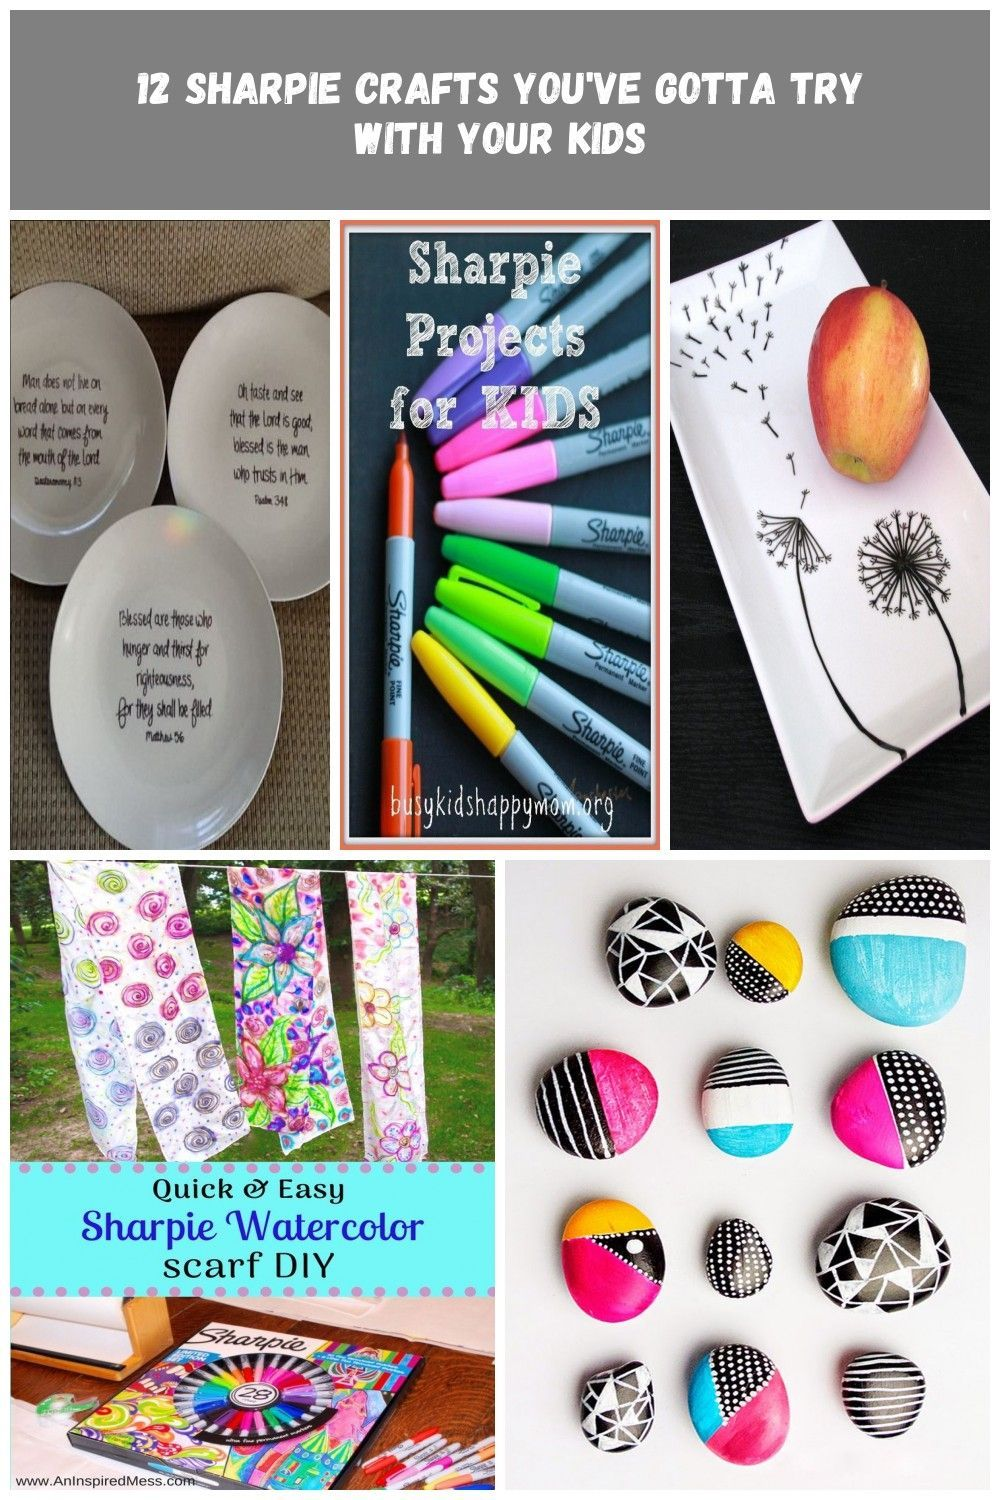 Trendy drawing ideas sharpie plates 53 ideas #drawing sharpie crafts Trendy drawing ideas sharpie plates 53 ideas #sharpieplates Trendy drawing ideas sharpie plates 53 ideas #drawing sharpie crafts Trendy drawing ideas sharpie plates 53 ideas #sharpieplates